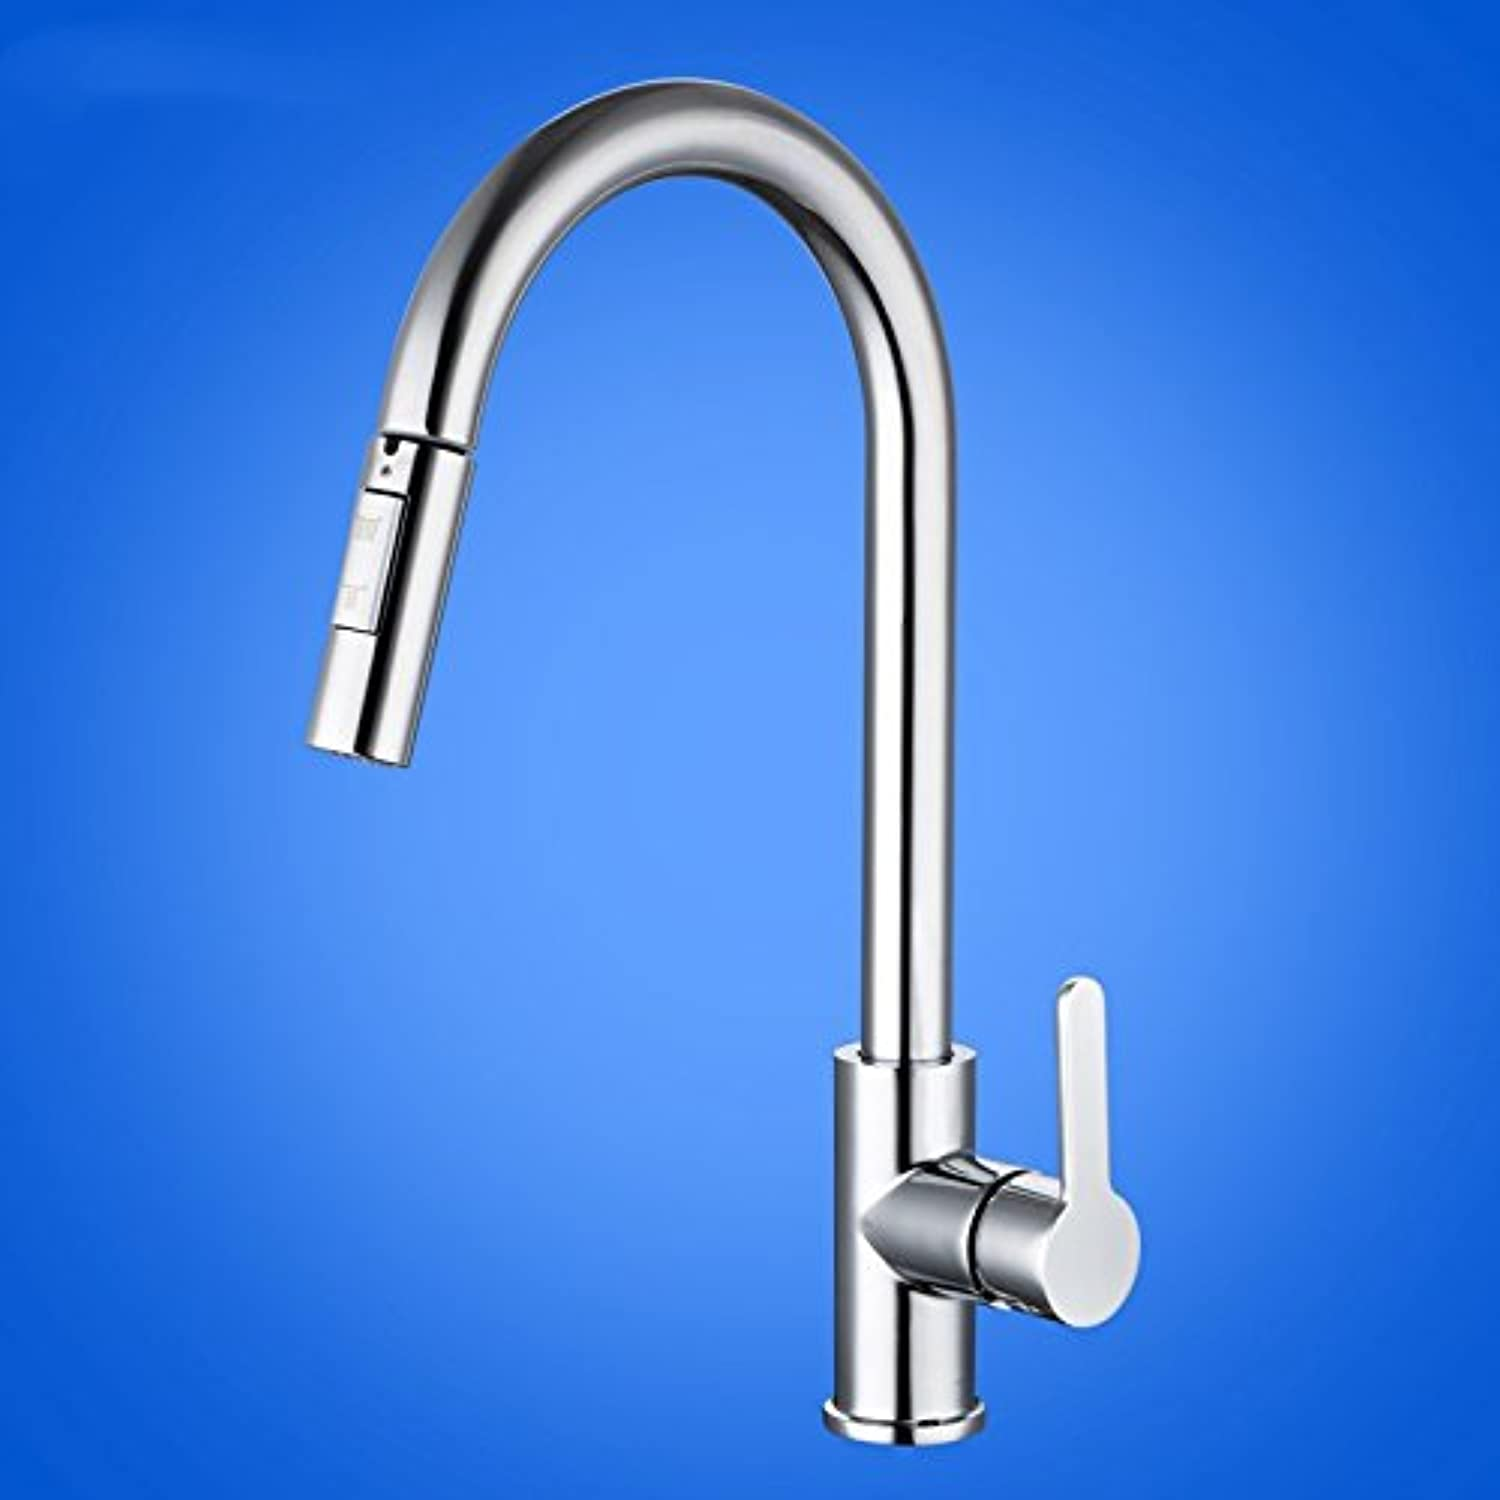 WasserhahnTap Kitchen faucet shower double effluent copper pull style telescopic sink sink faucet hot cold water